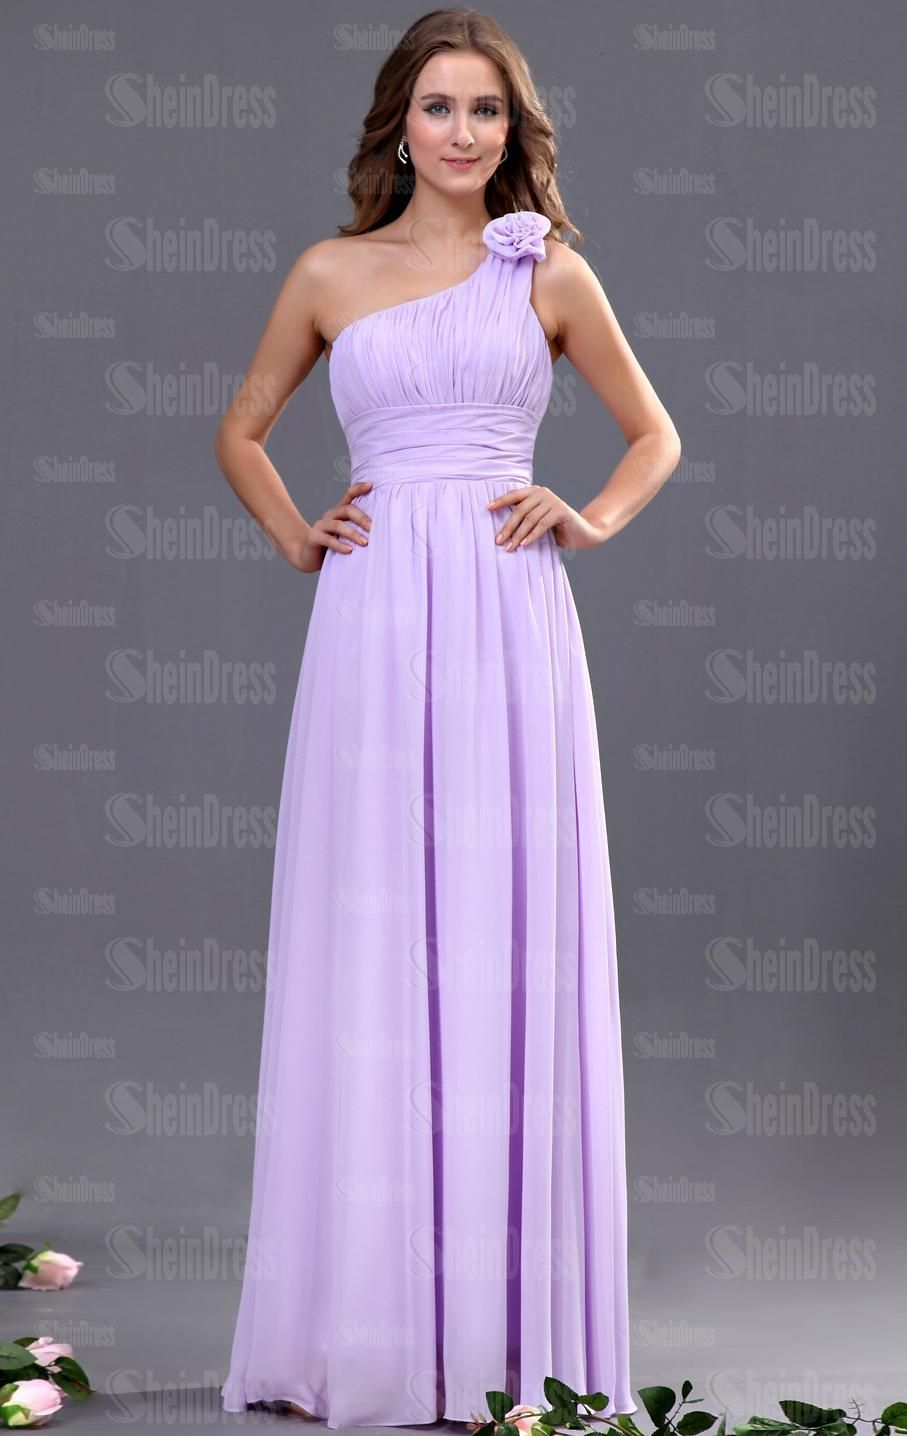 Chiffon lilac casual bridesmaid dresses bnnah0080 sheindressau here is the information for dress chiffon lilac casual bridesmaid dresses in professional dresses australia store welcome to shop your tailor made dress ombrellifo Images